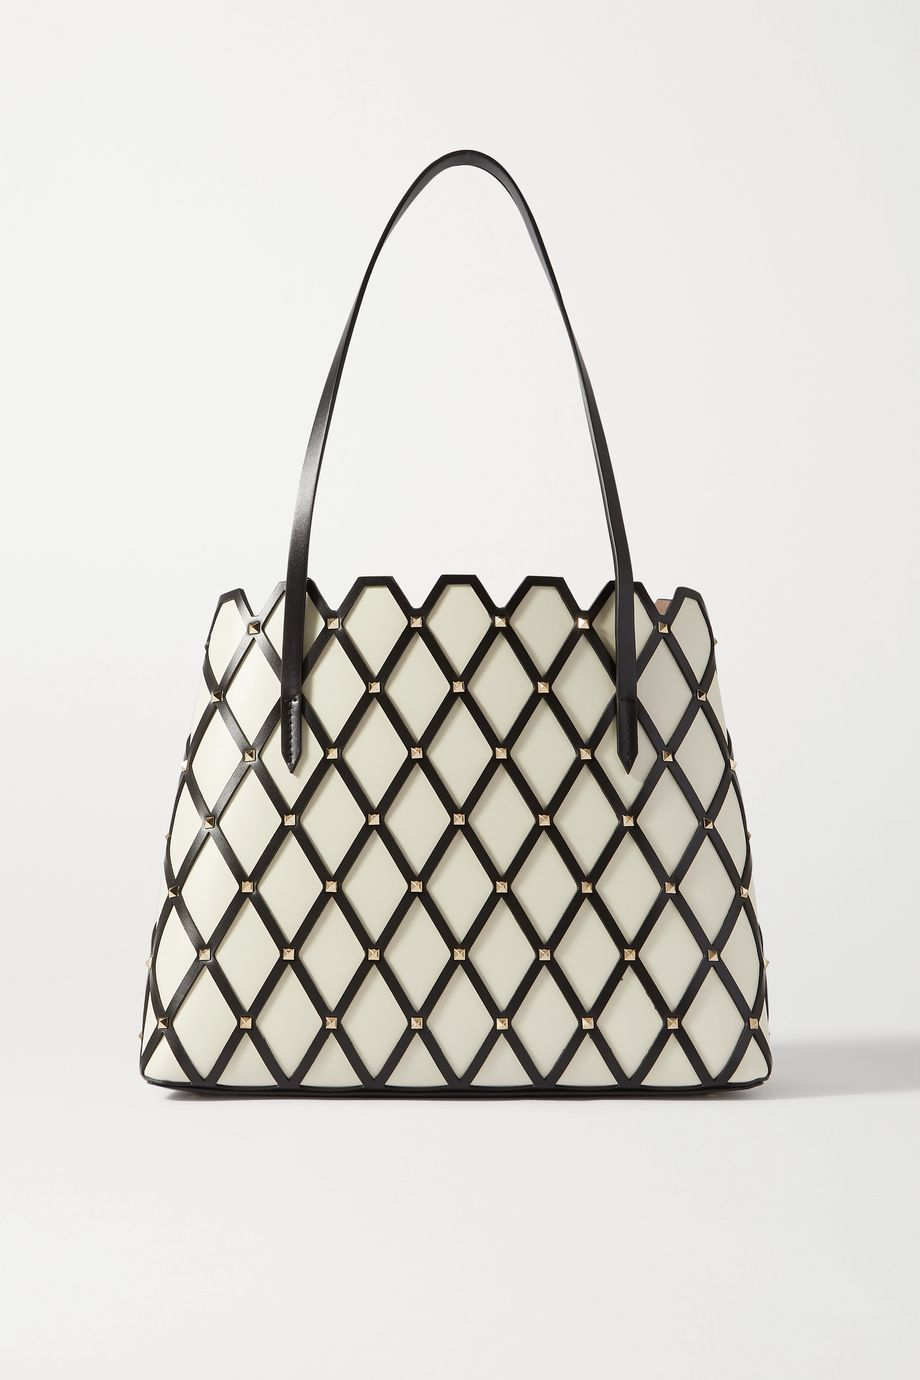 Valentino Valentino Garavani Beehive medium studded leather tote